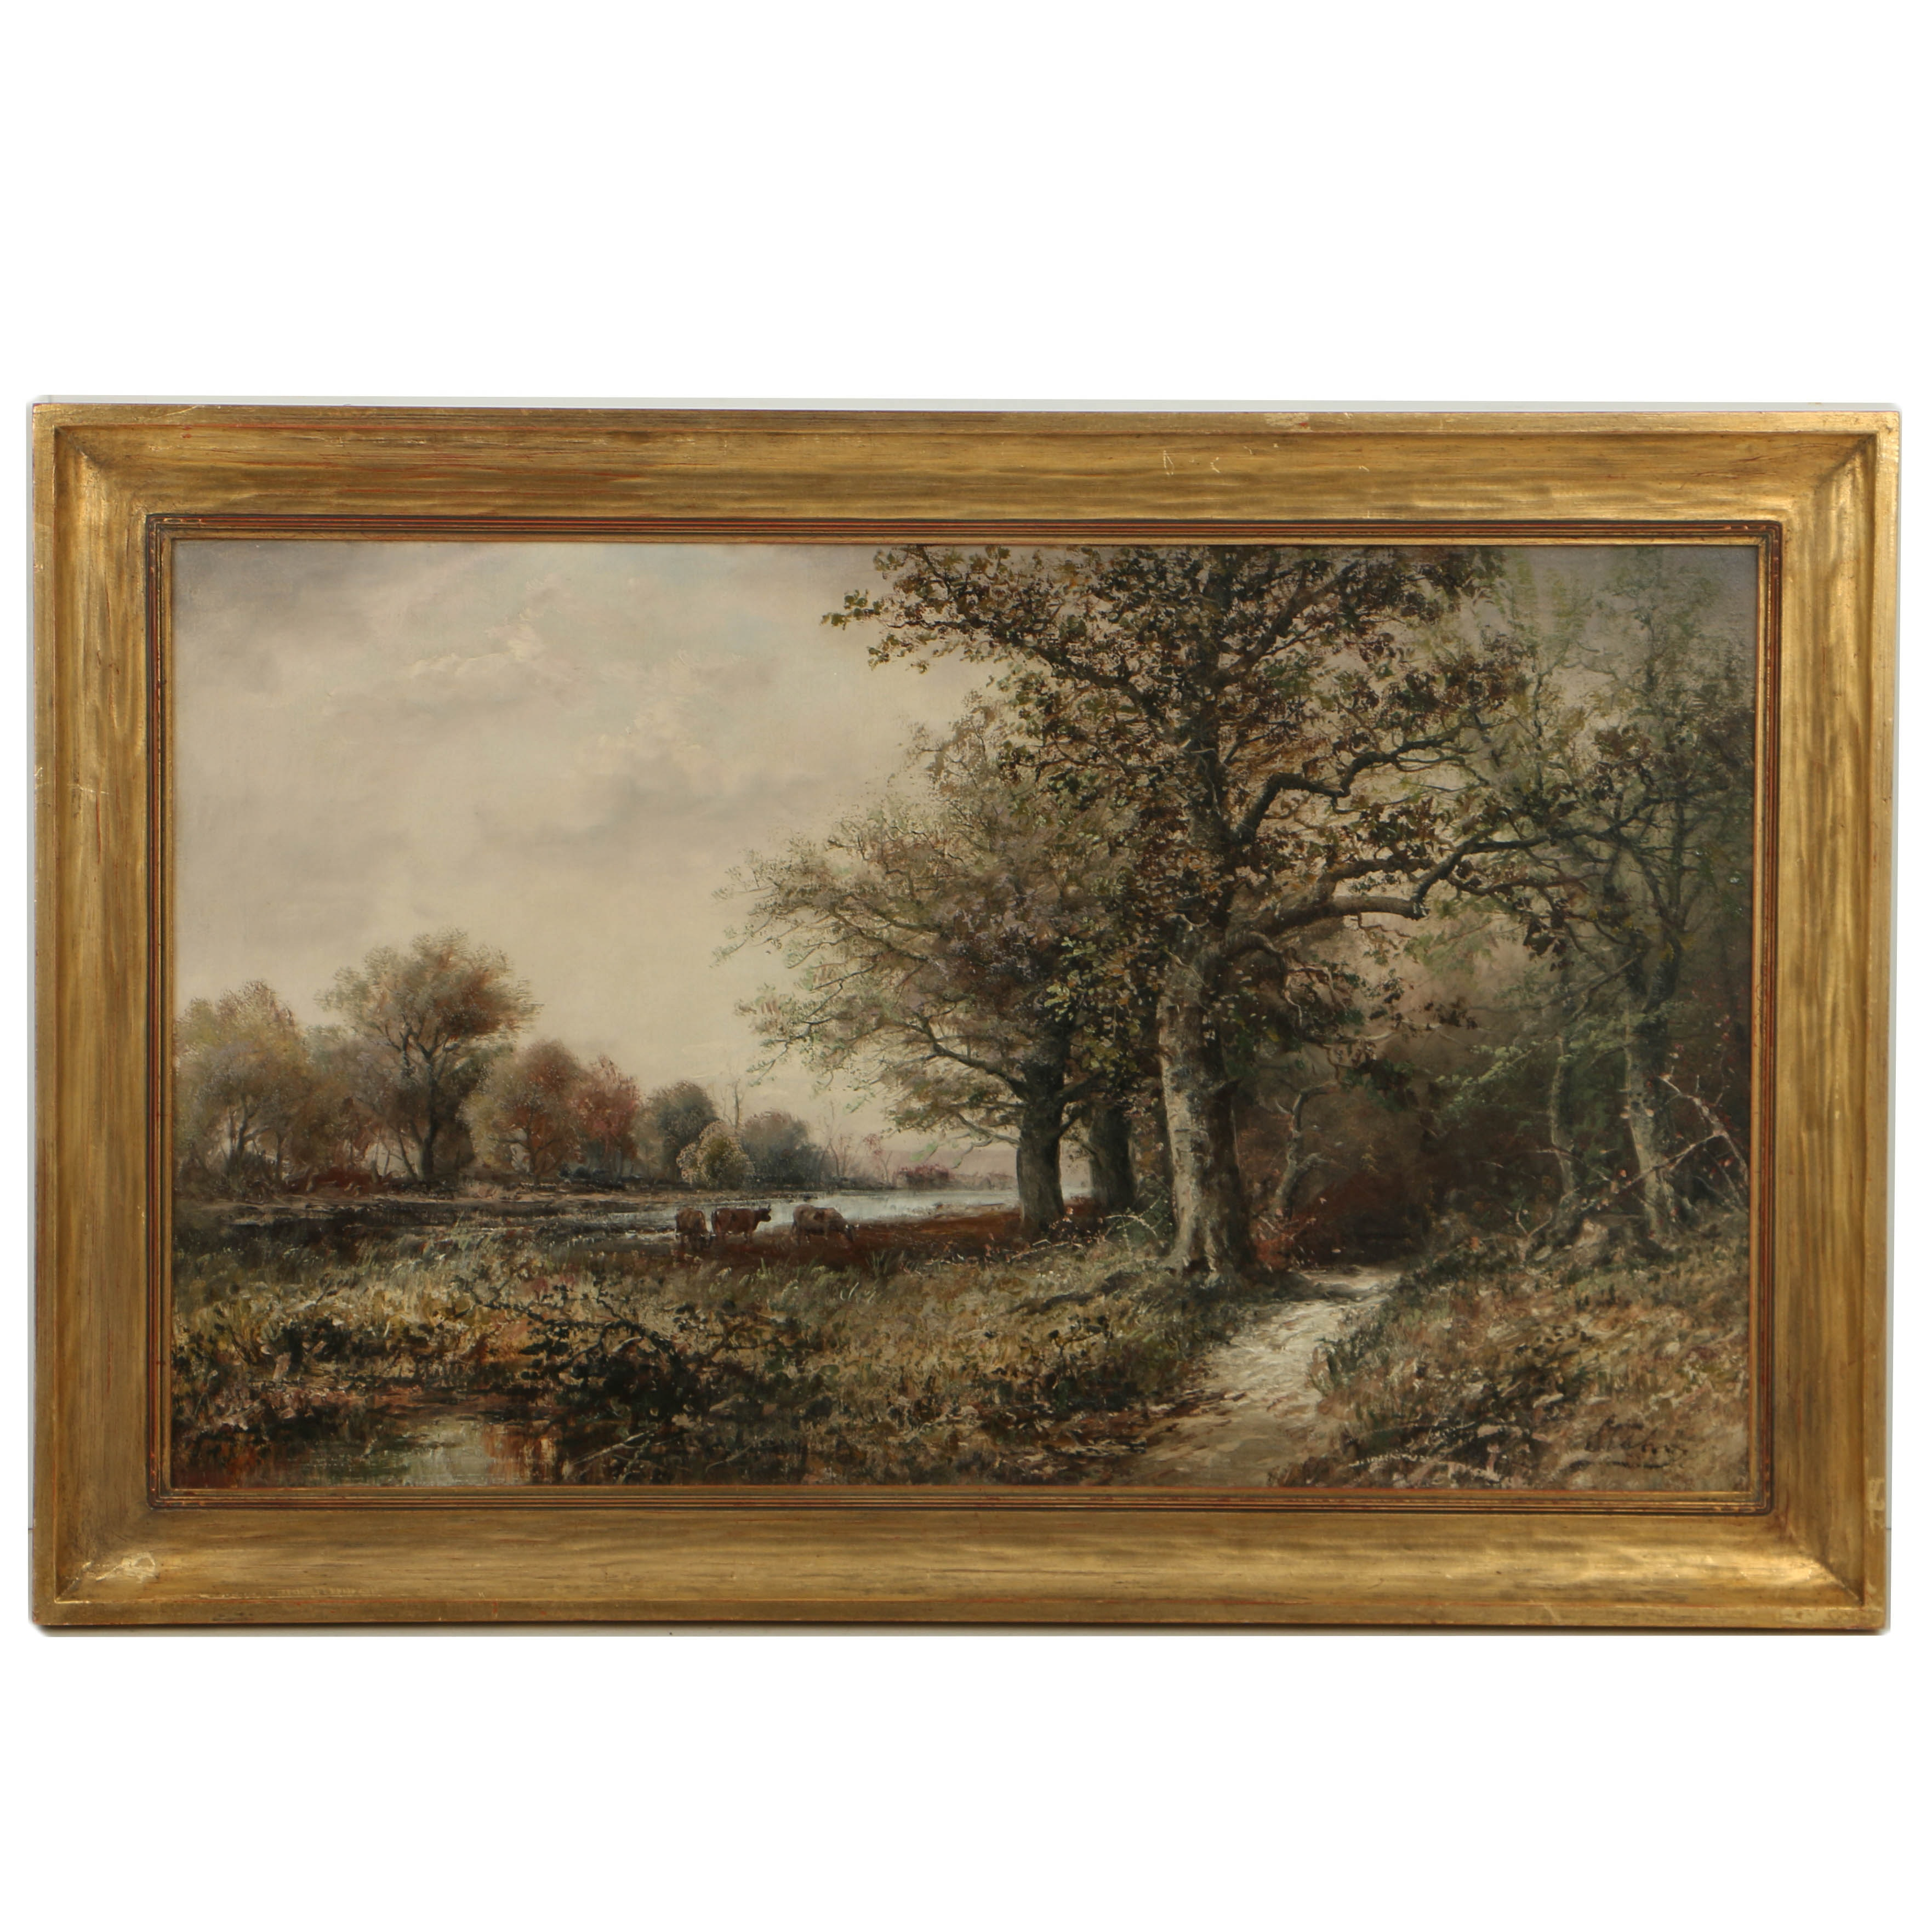 Mid 20th-Century Oil Painting on Canvas Pastoral Landscape